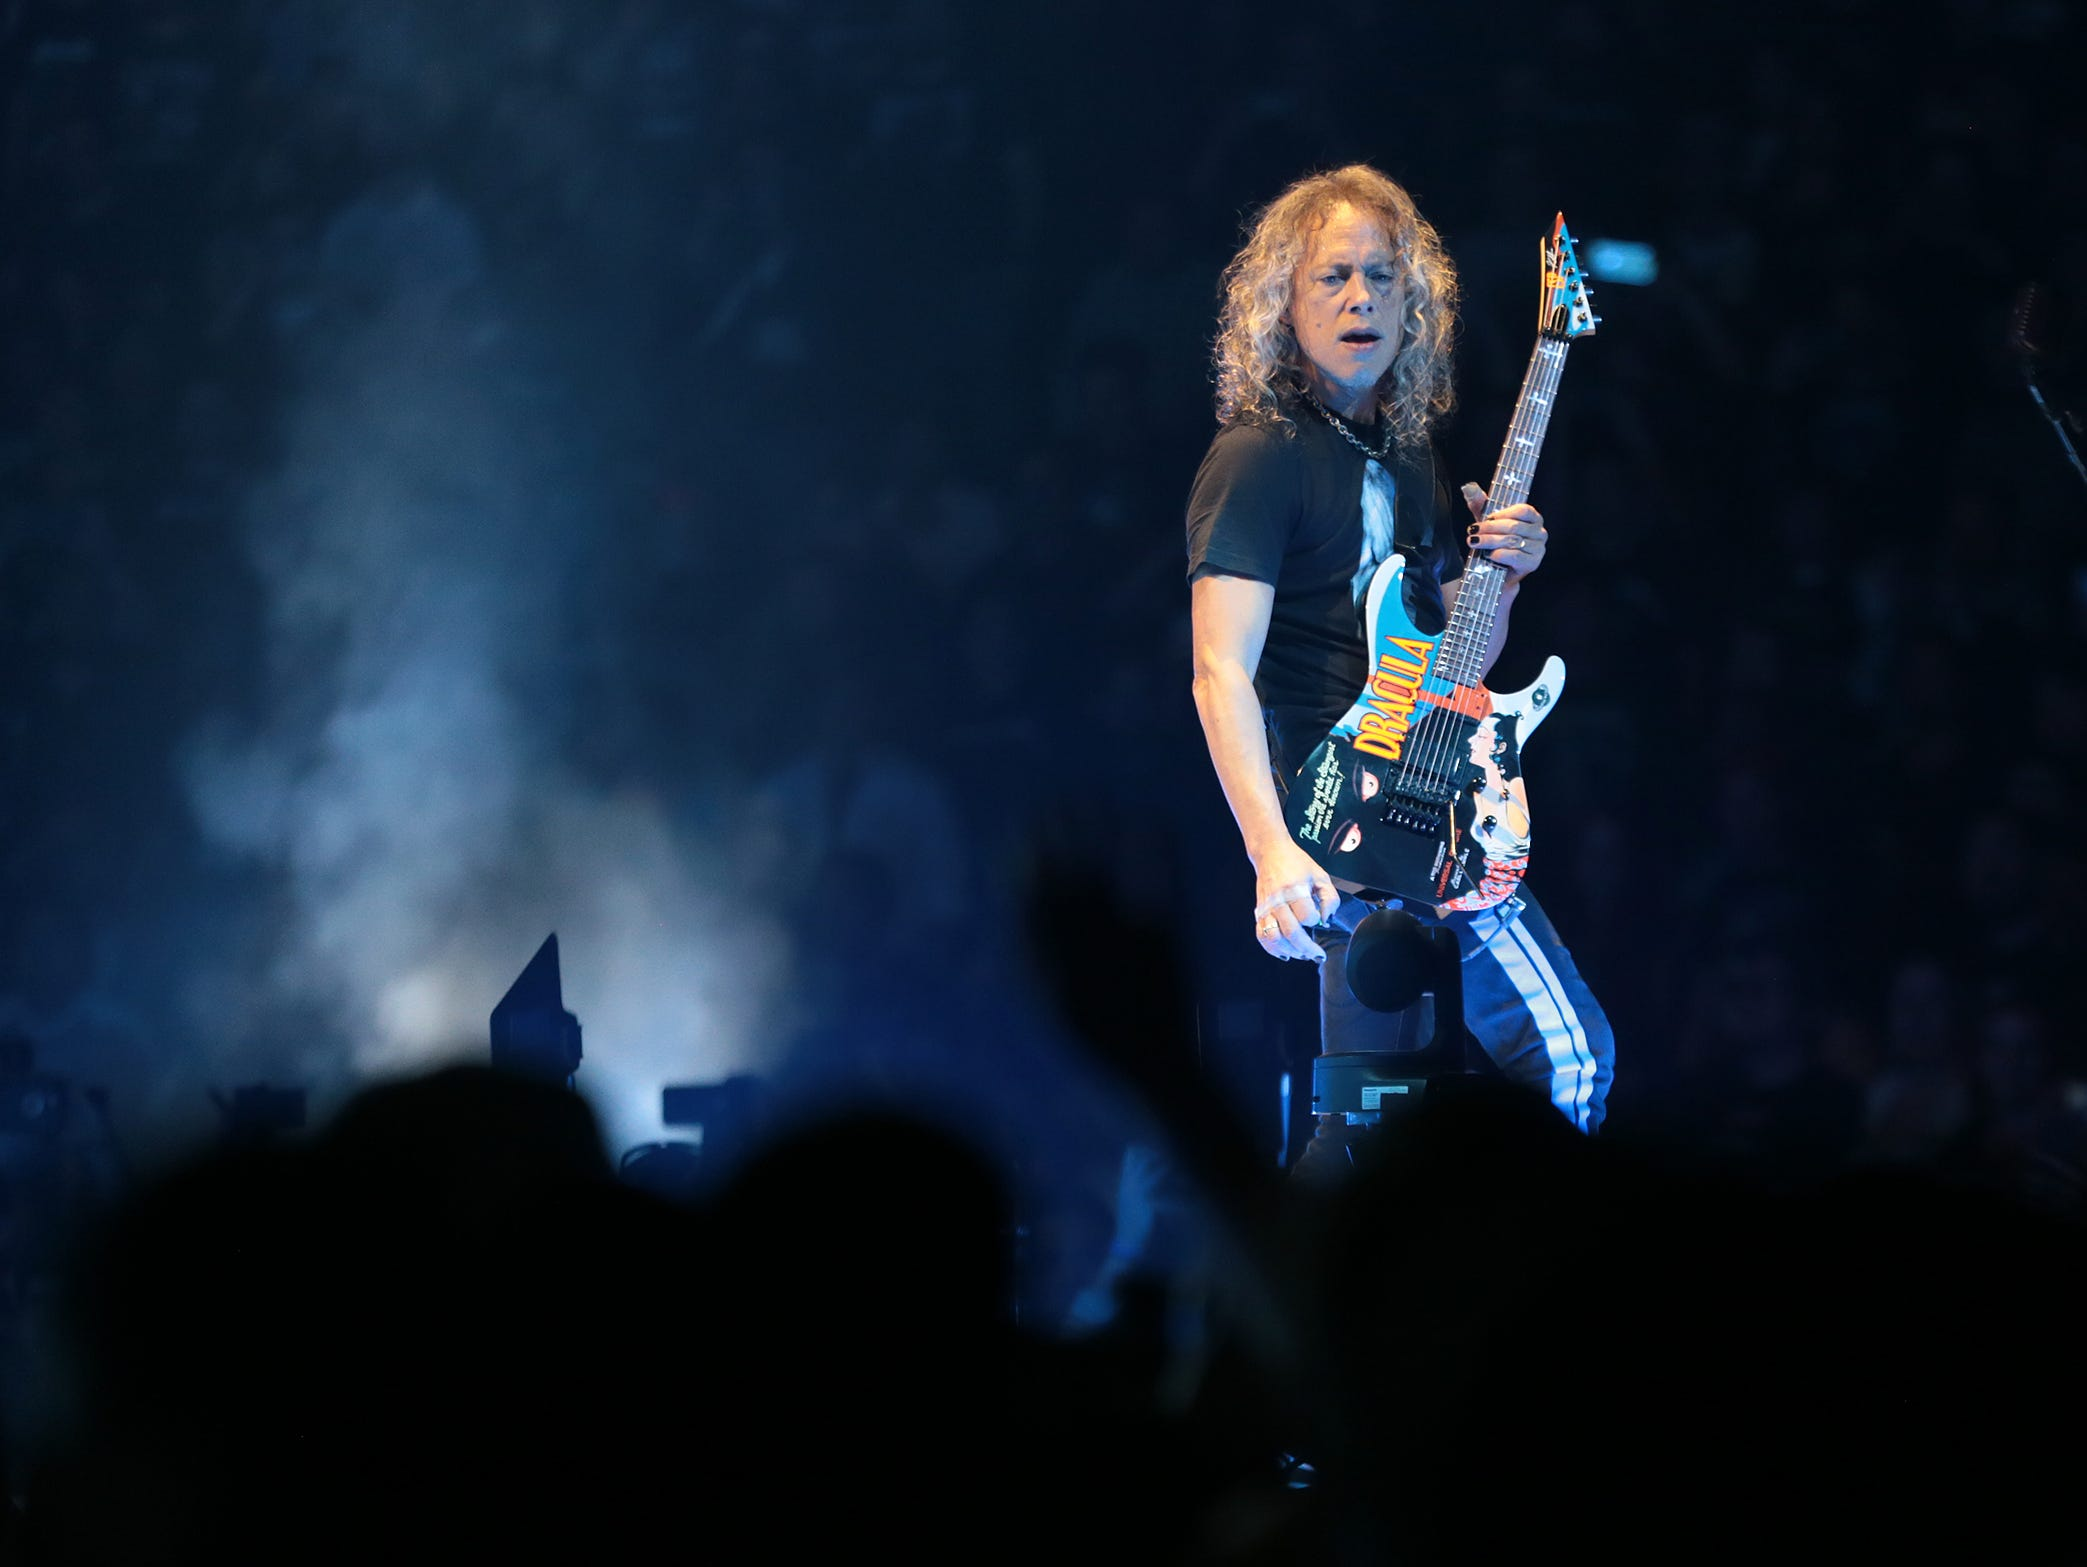 Metallica played to a sold out Don Haskins Center Thursday night. The long-time metal band brought their long-awaited show to El Paso along with comedian Jim Breuer to warm up the crowd.